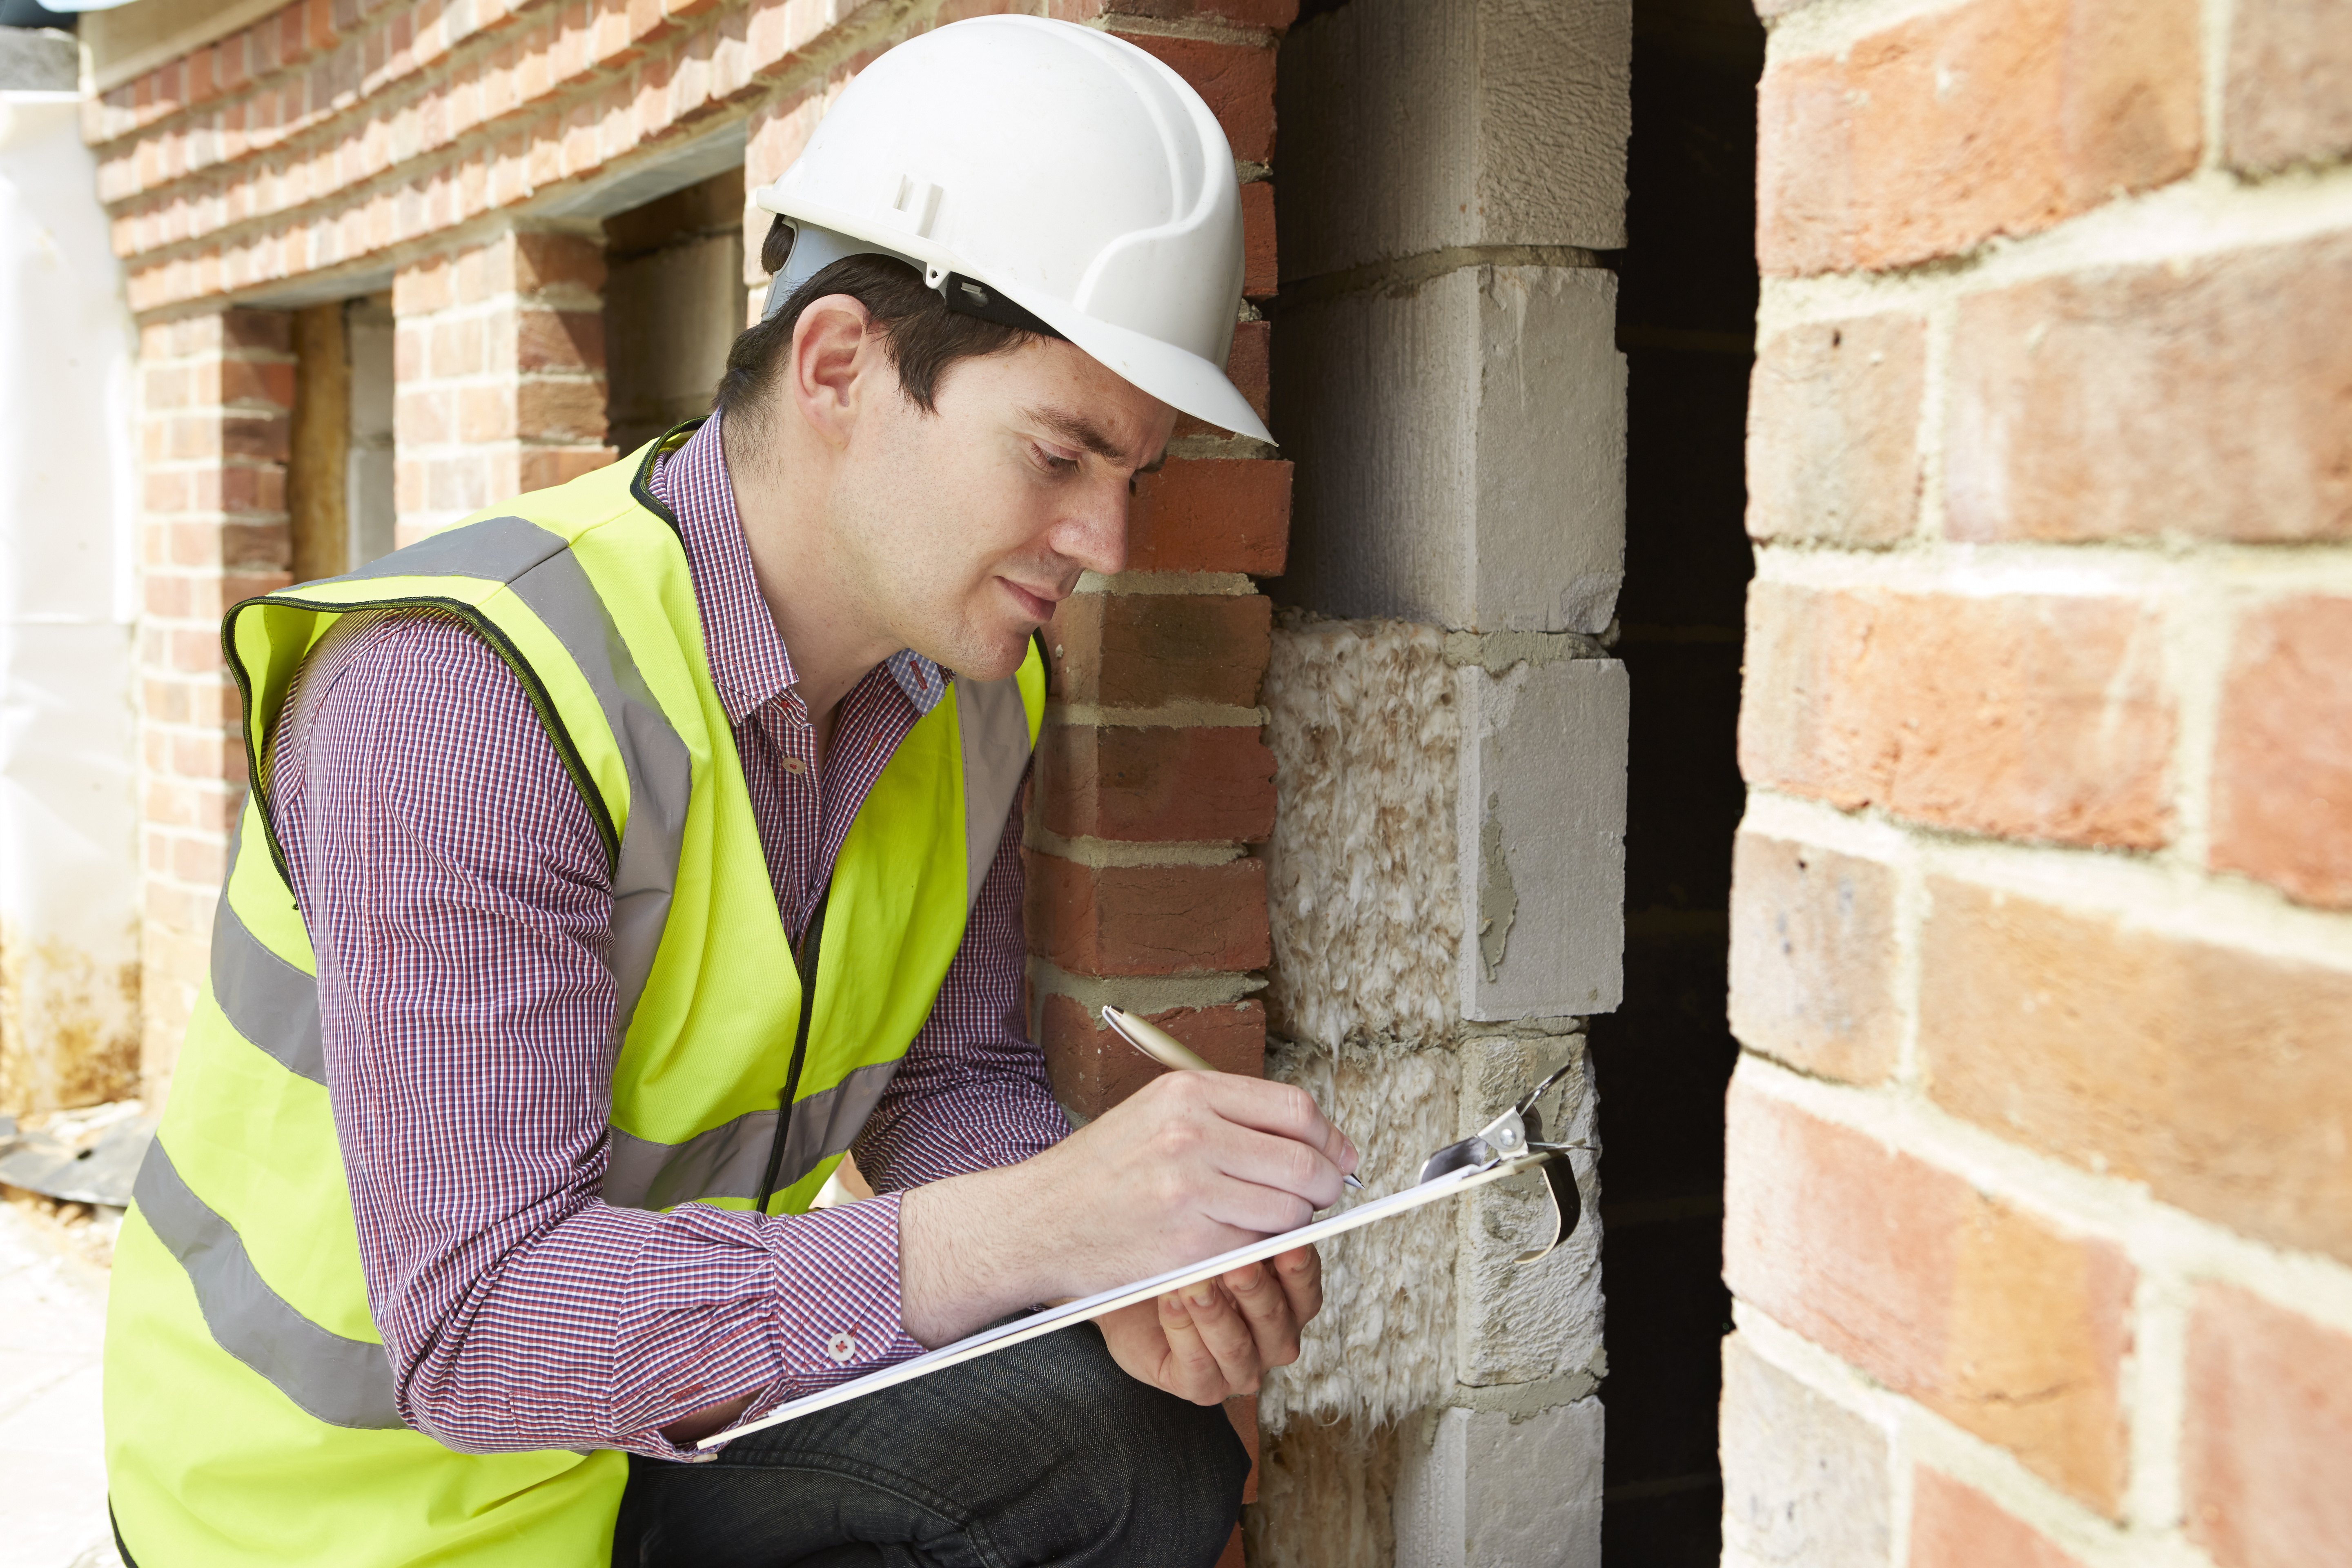 Insurance Adjuster Inspects Home During Appraisal